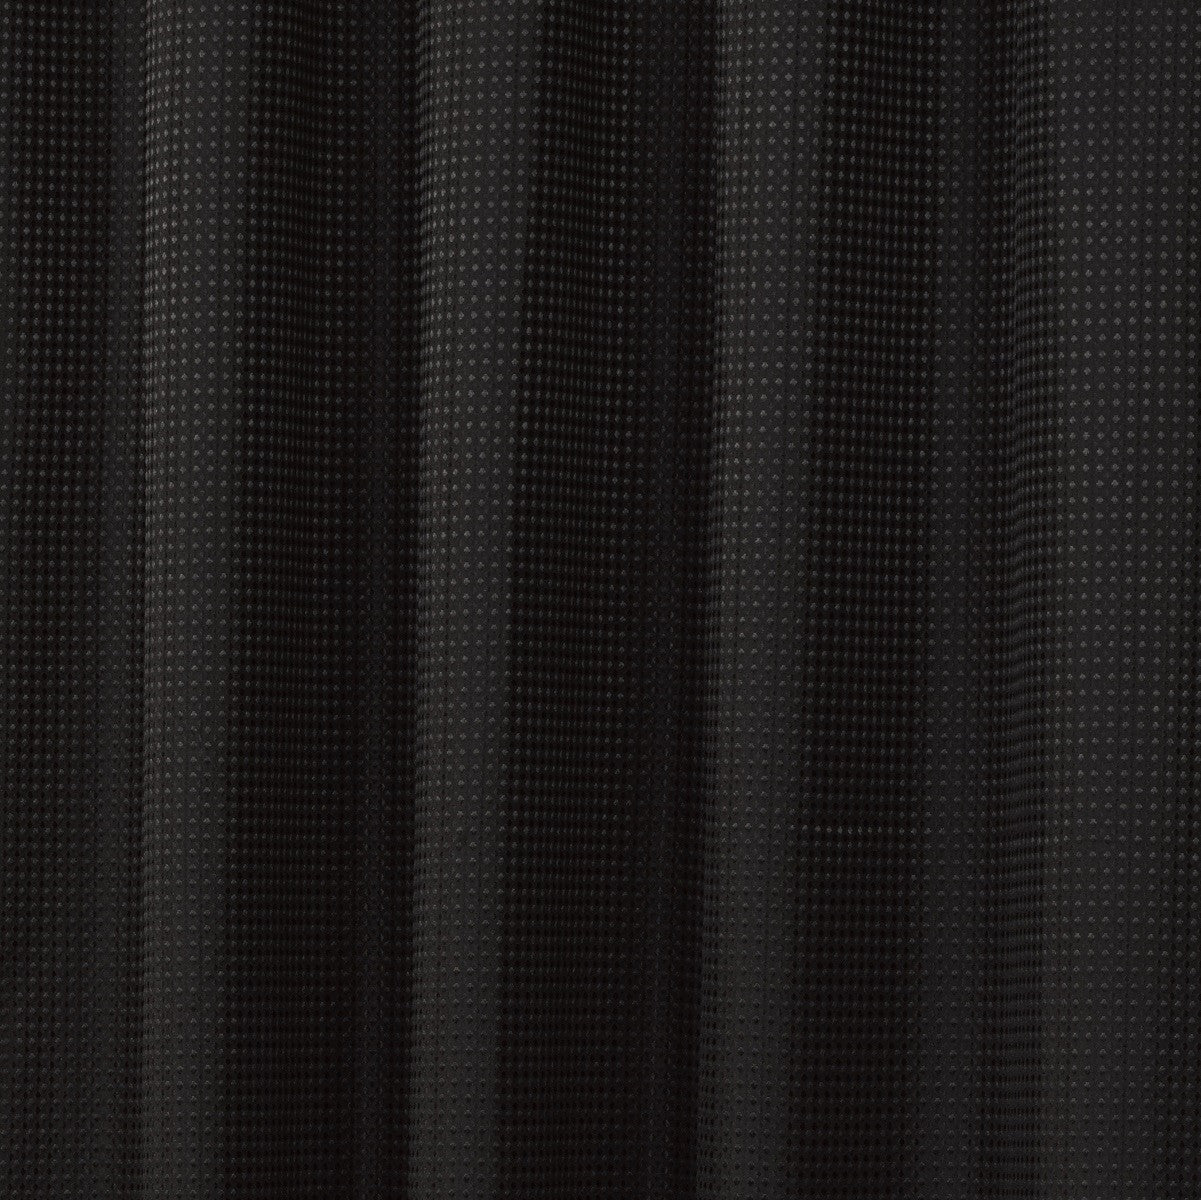 Waffle Black Textured Pencil Pleat Lined Readymade Curtains | 4YH ... for Black Curtains Texture  110yll